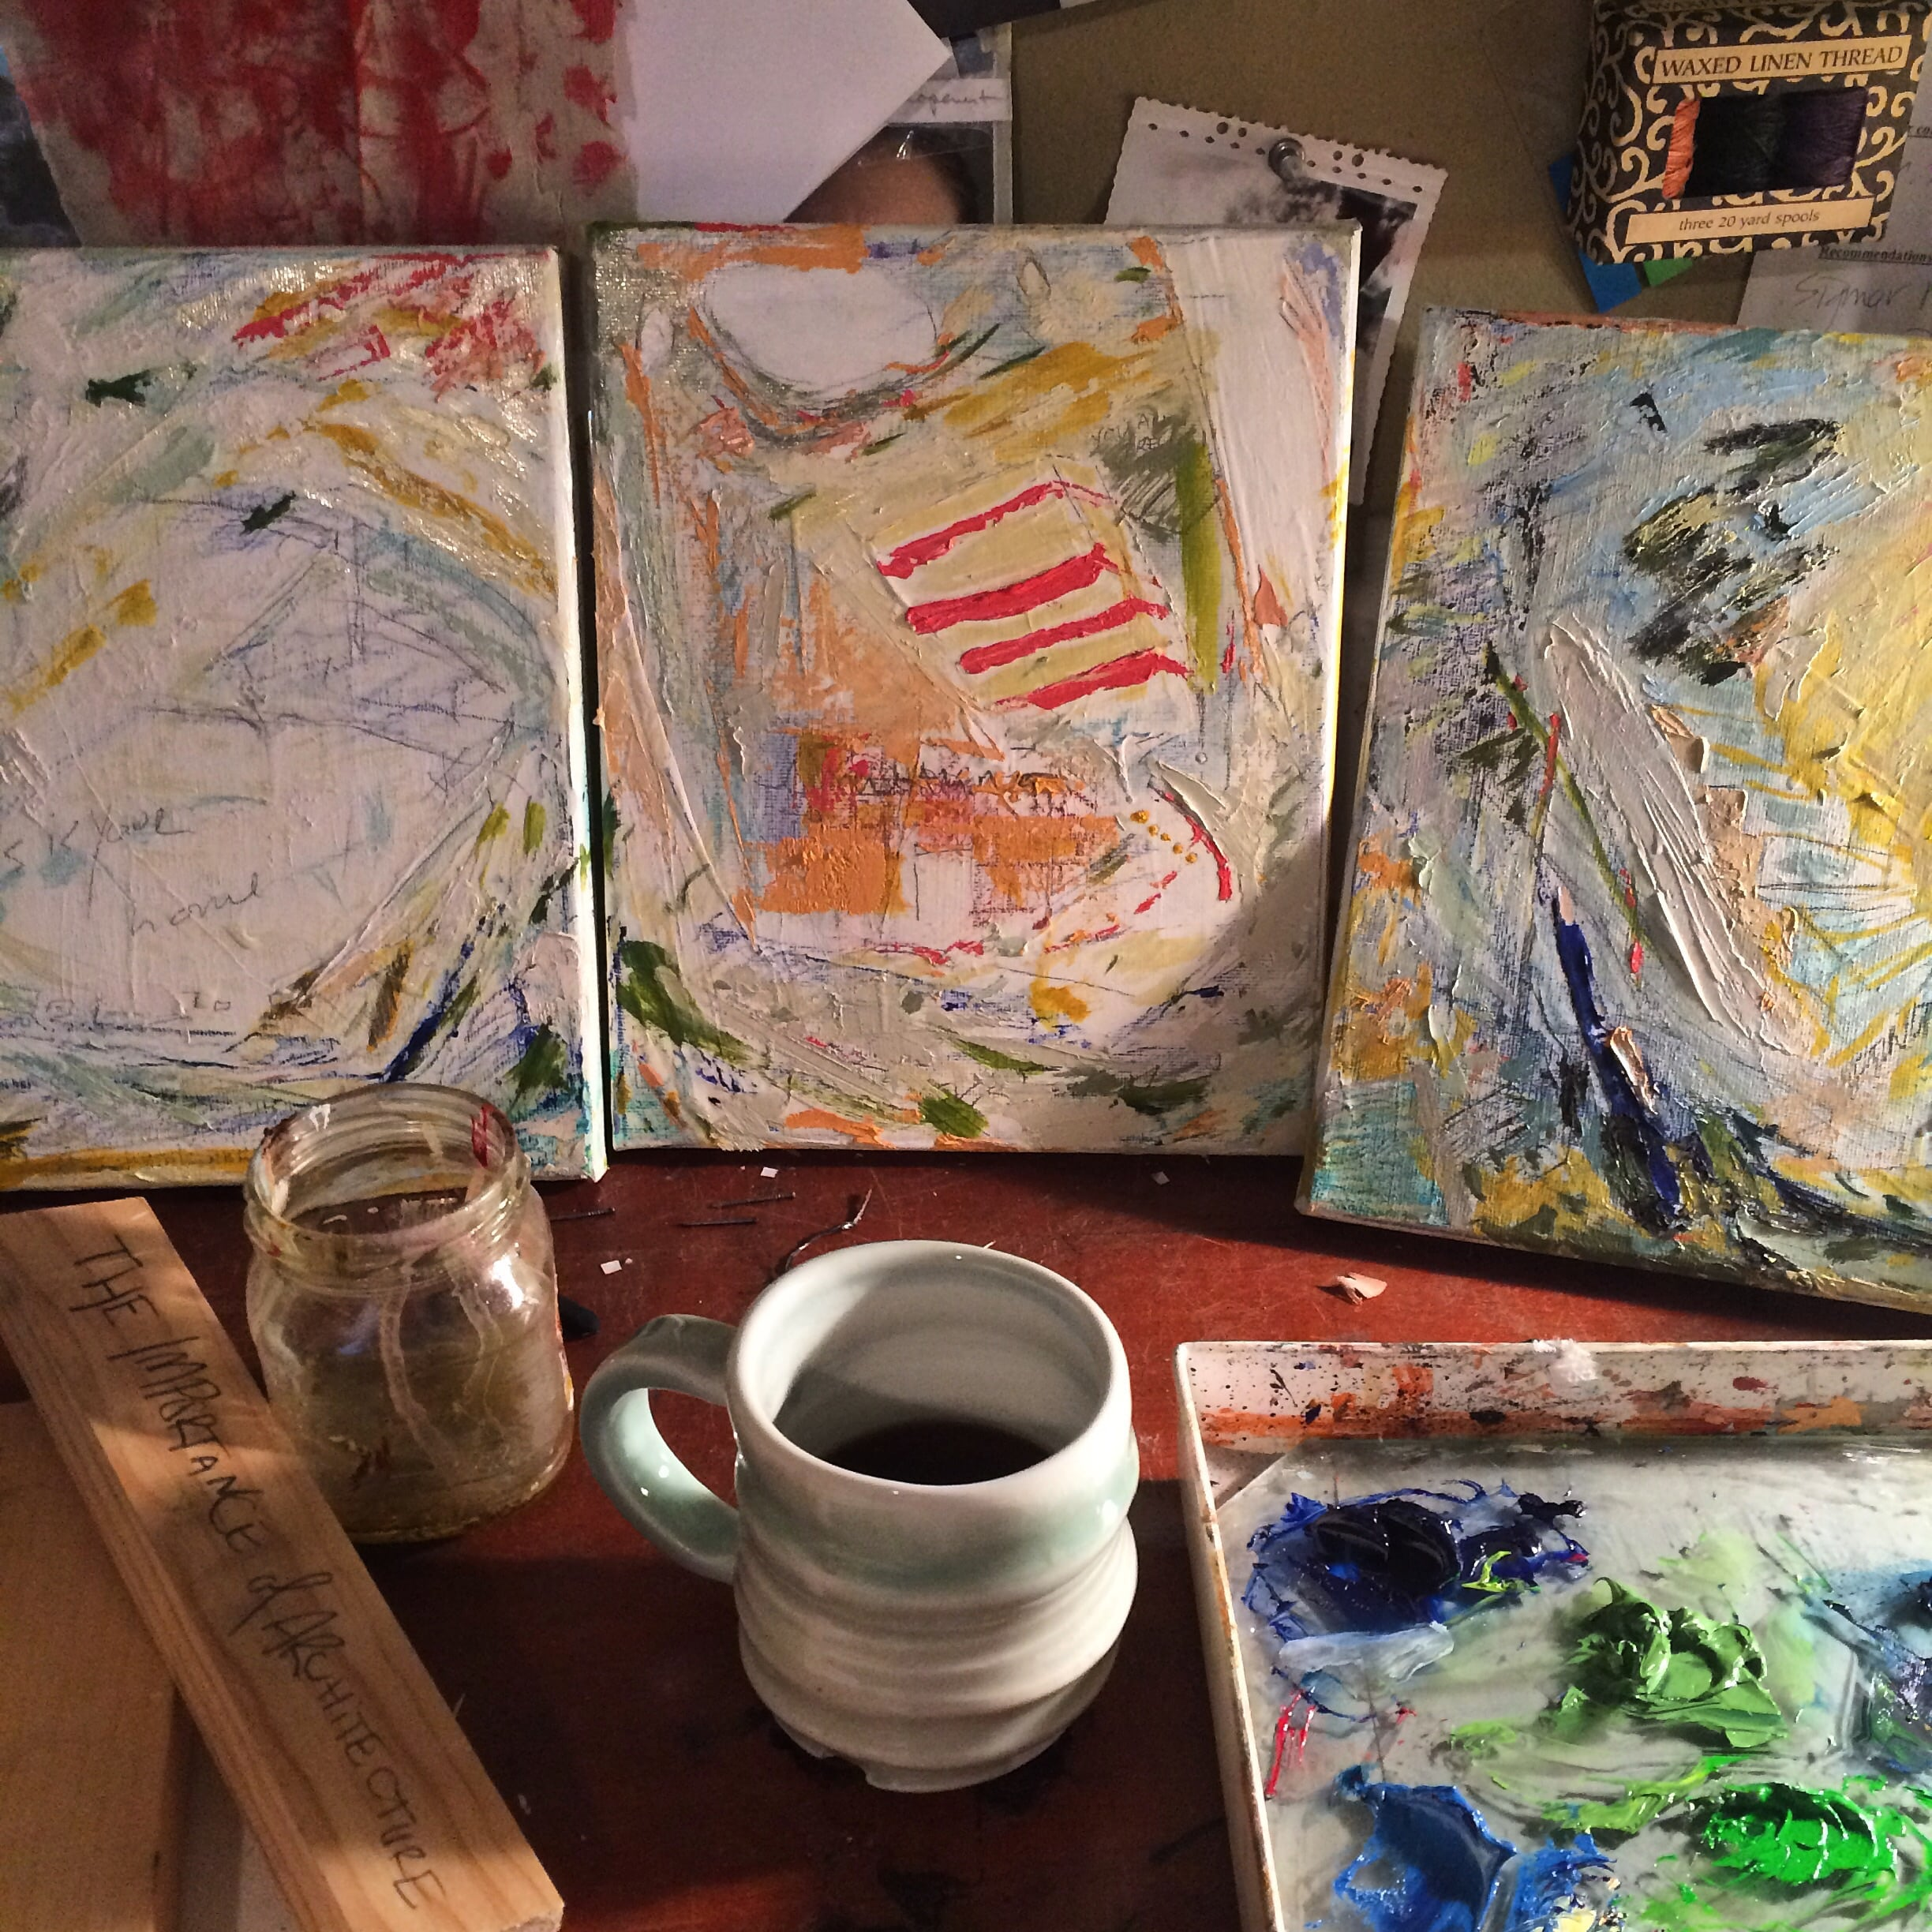 Many mornings look like this: a black coffee and a full palette. By now, the piece is nearly finished. This photo was taken during the last session I spent working with these little guys.